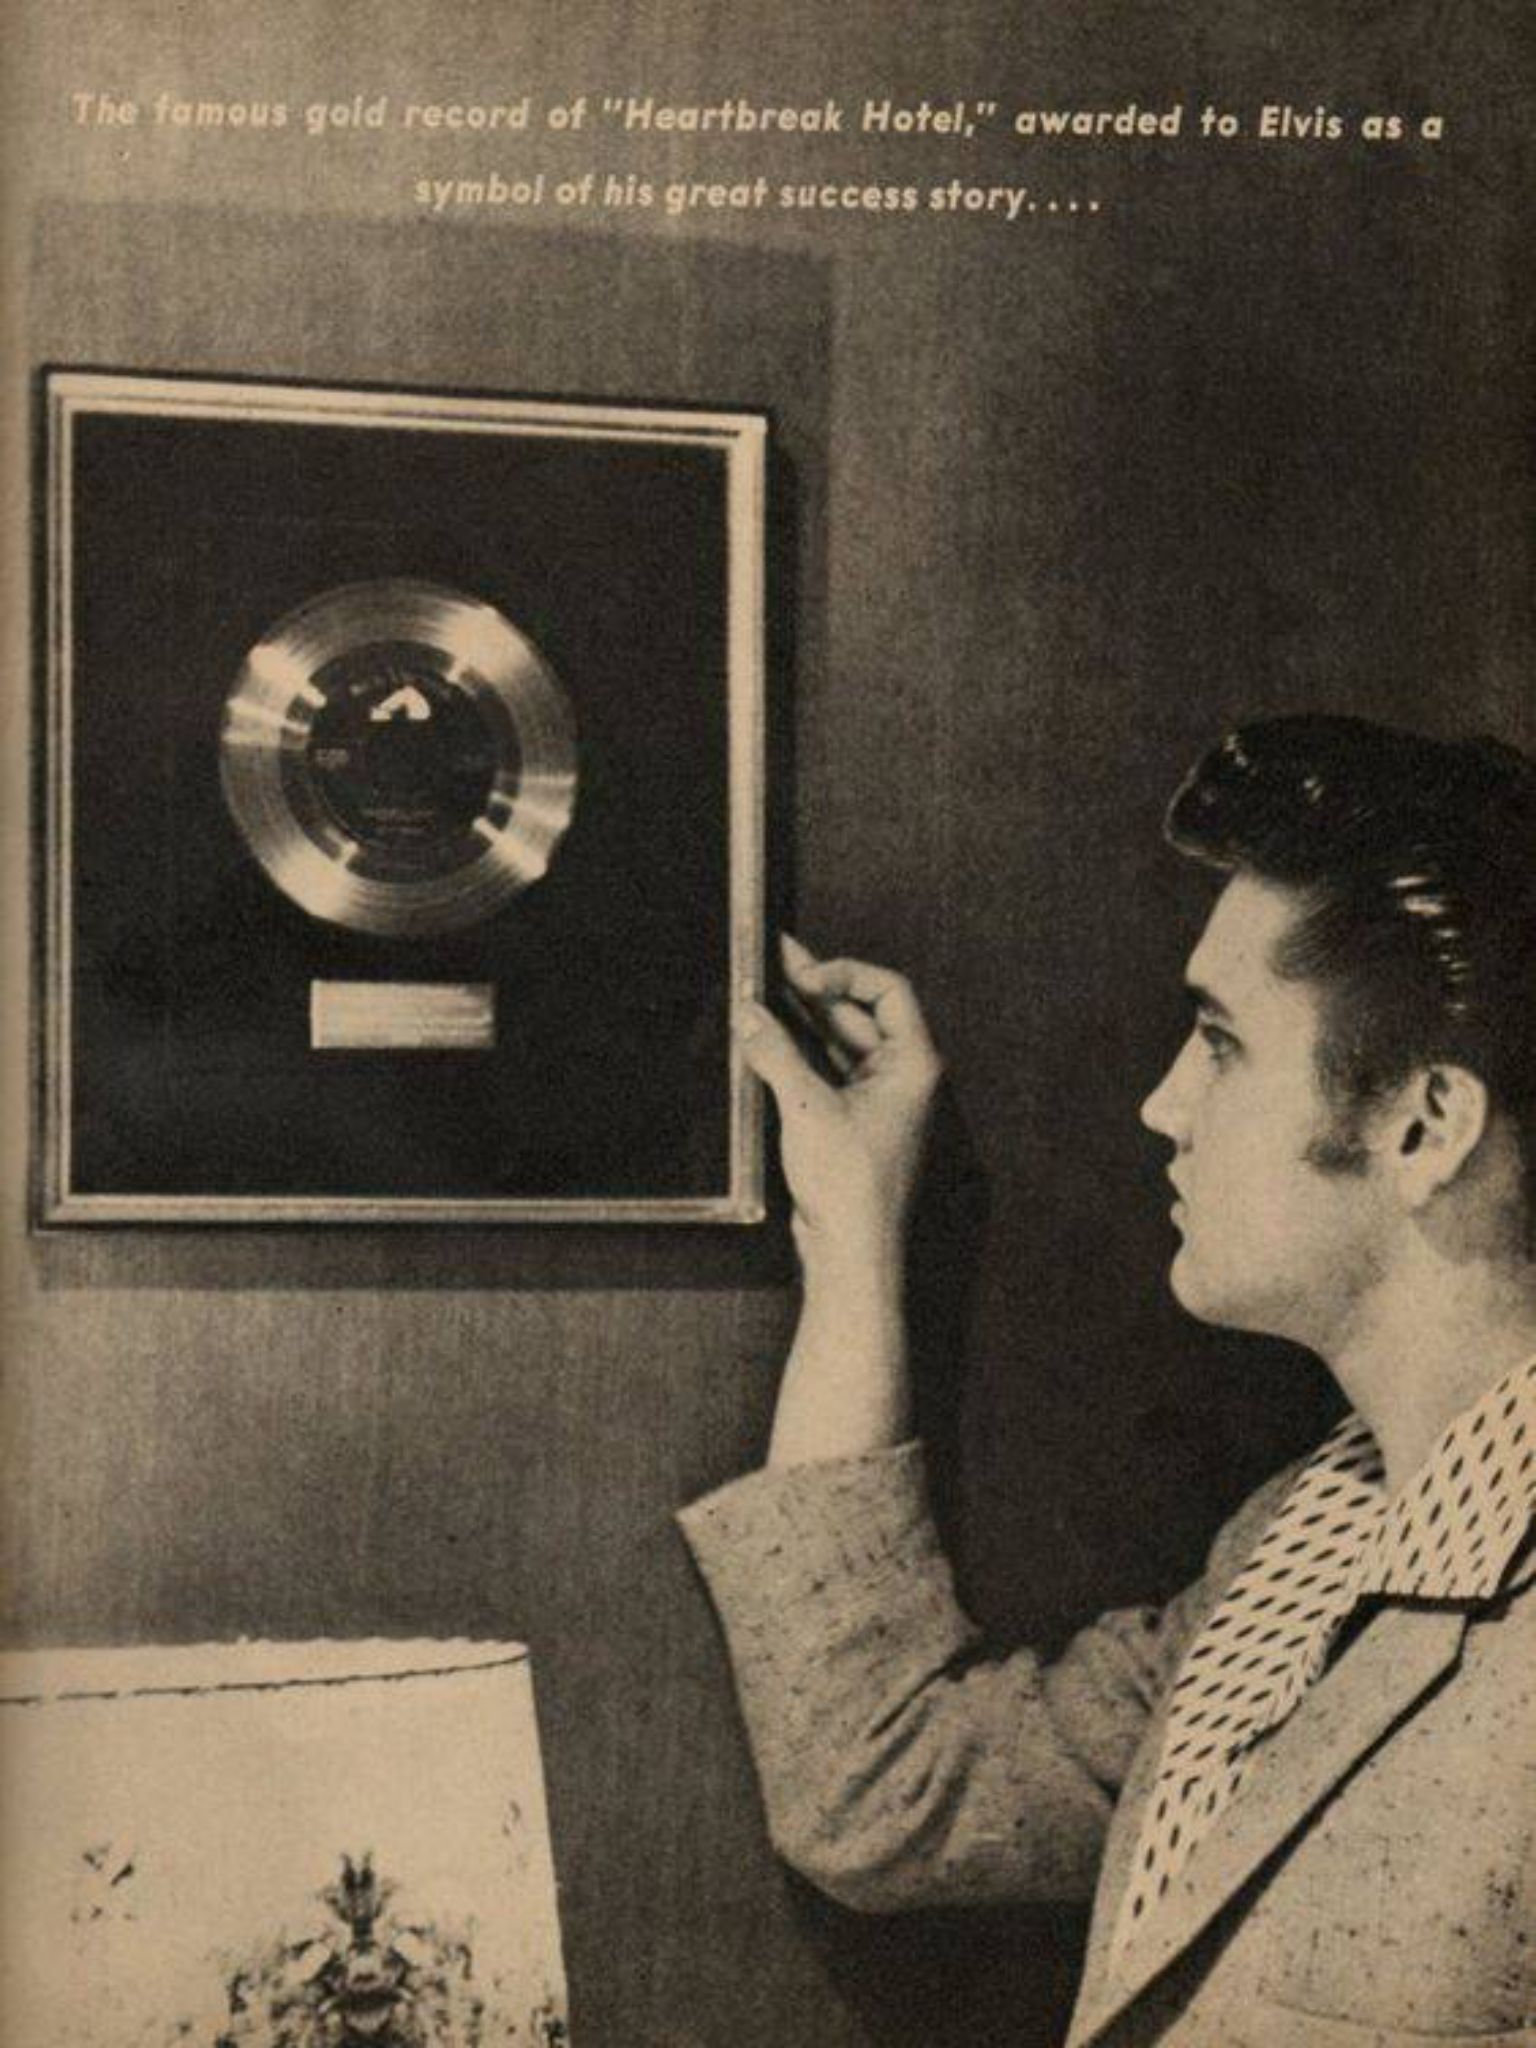 Elvis With Gold Record Million